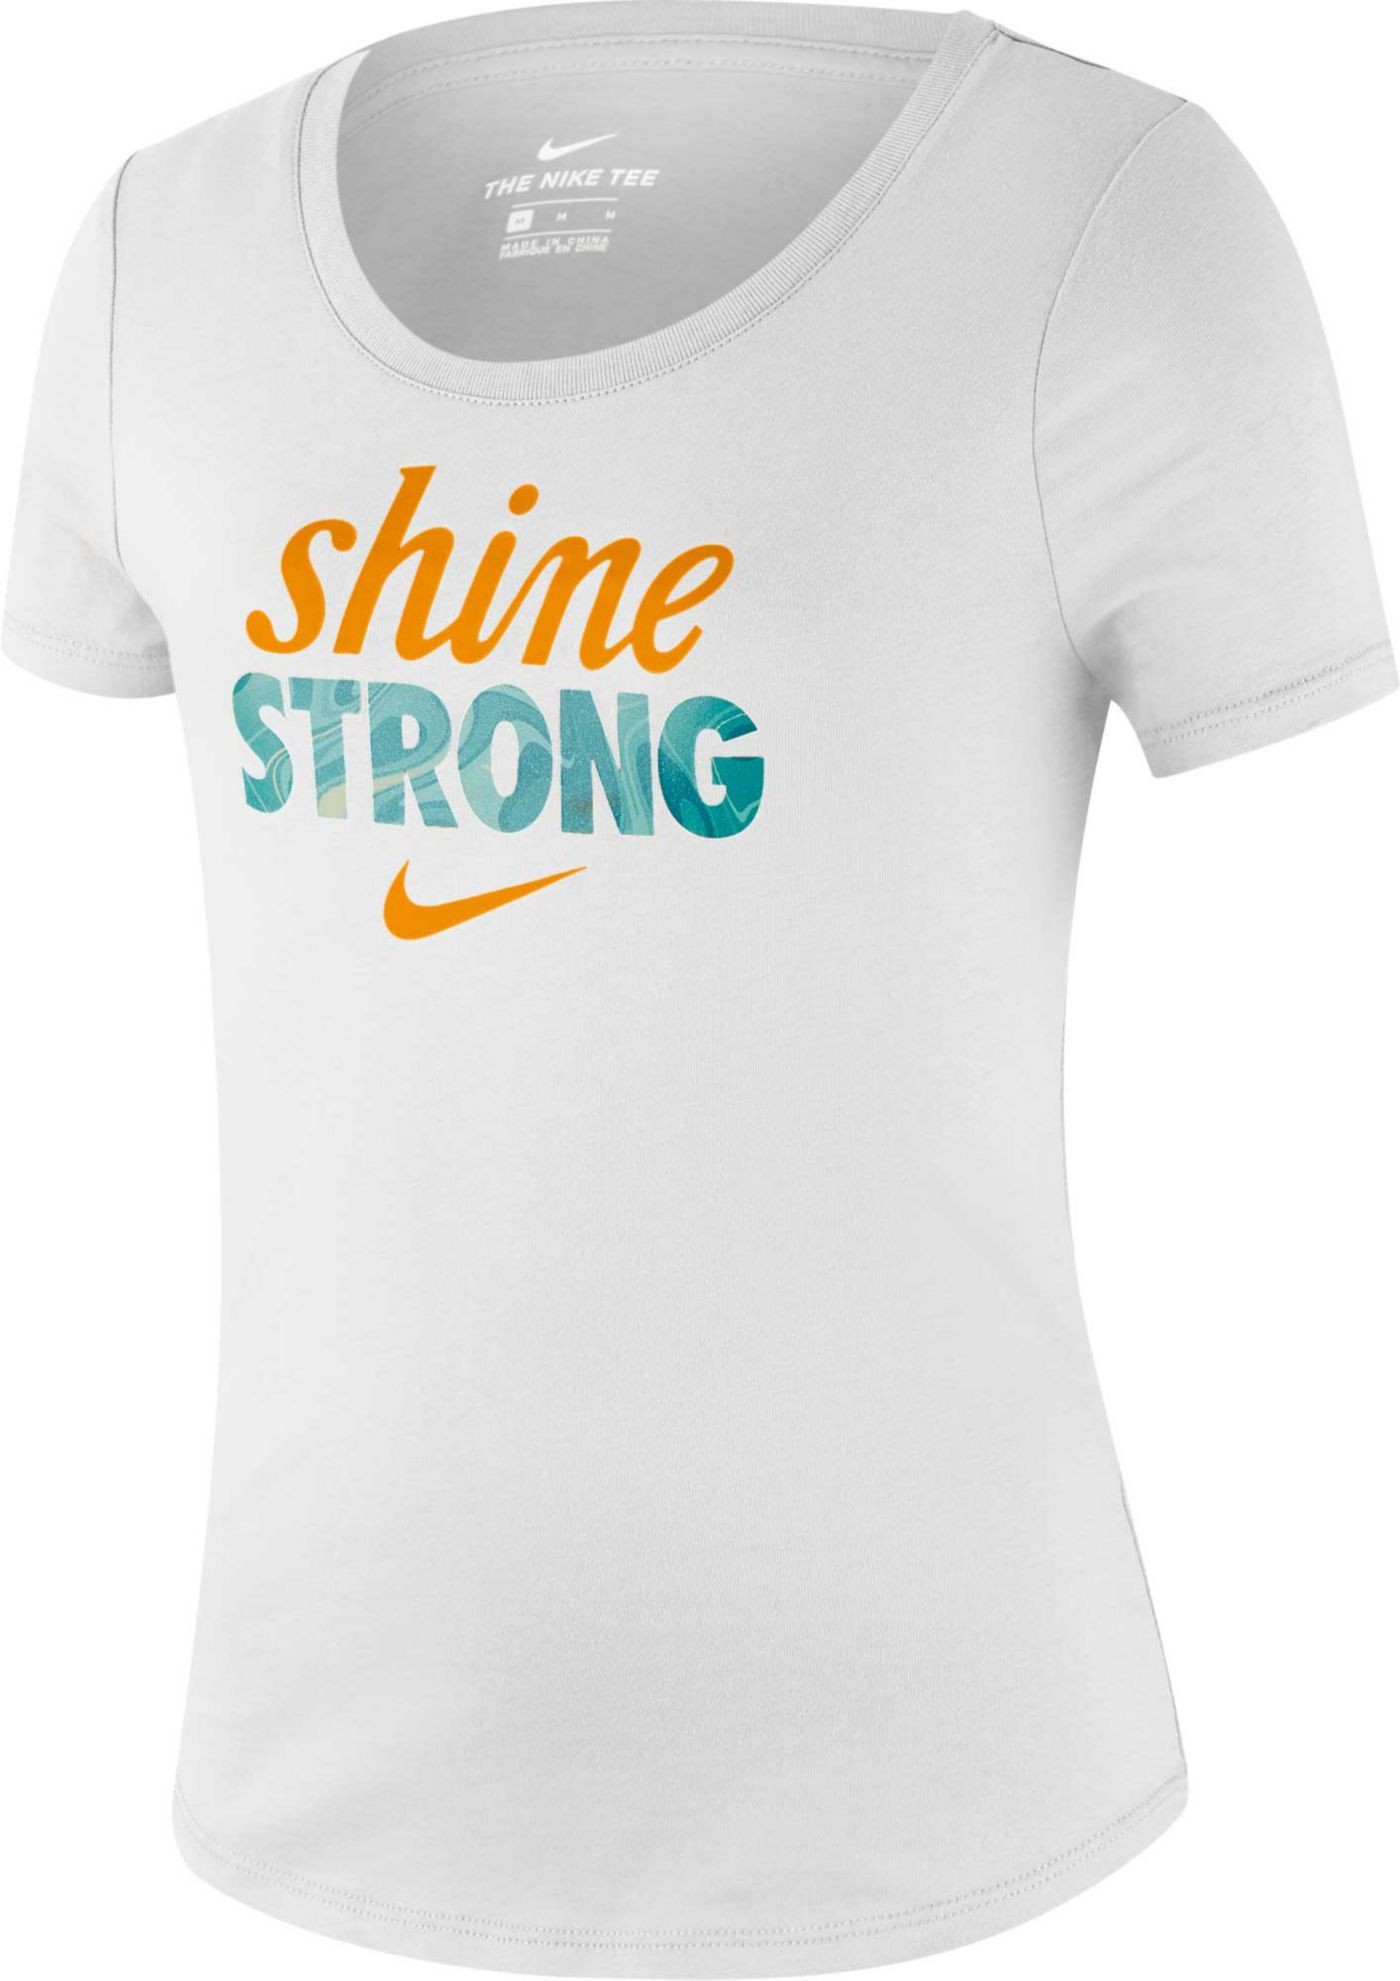 Nike Girls' Sportswear Shine Strong Graphic Tee